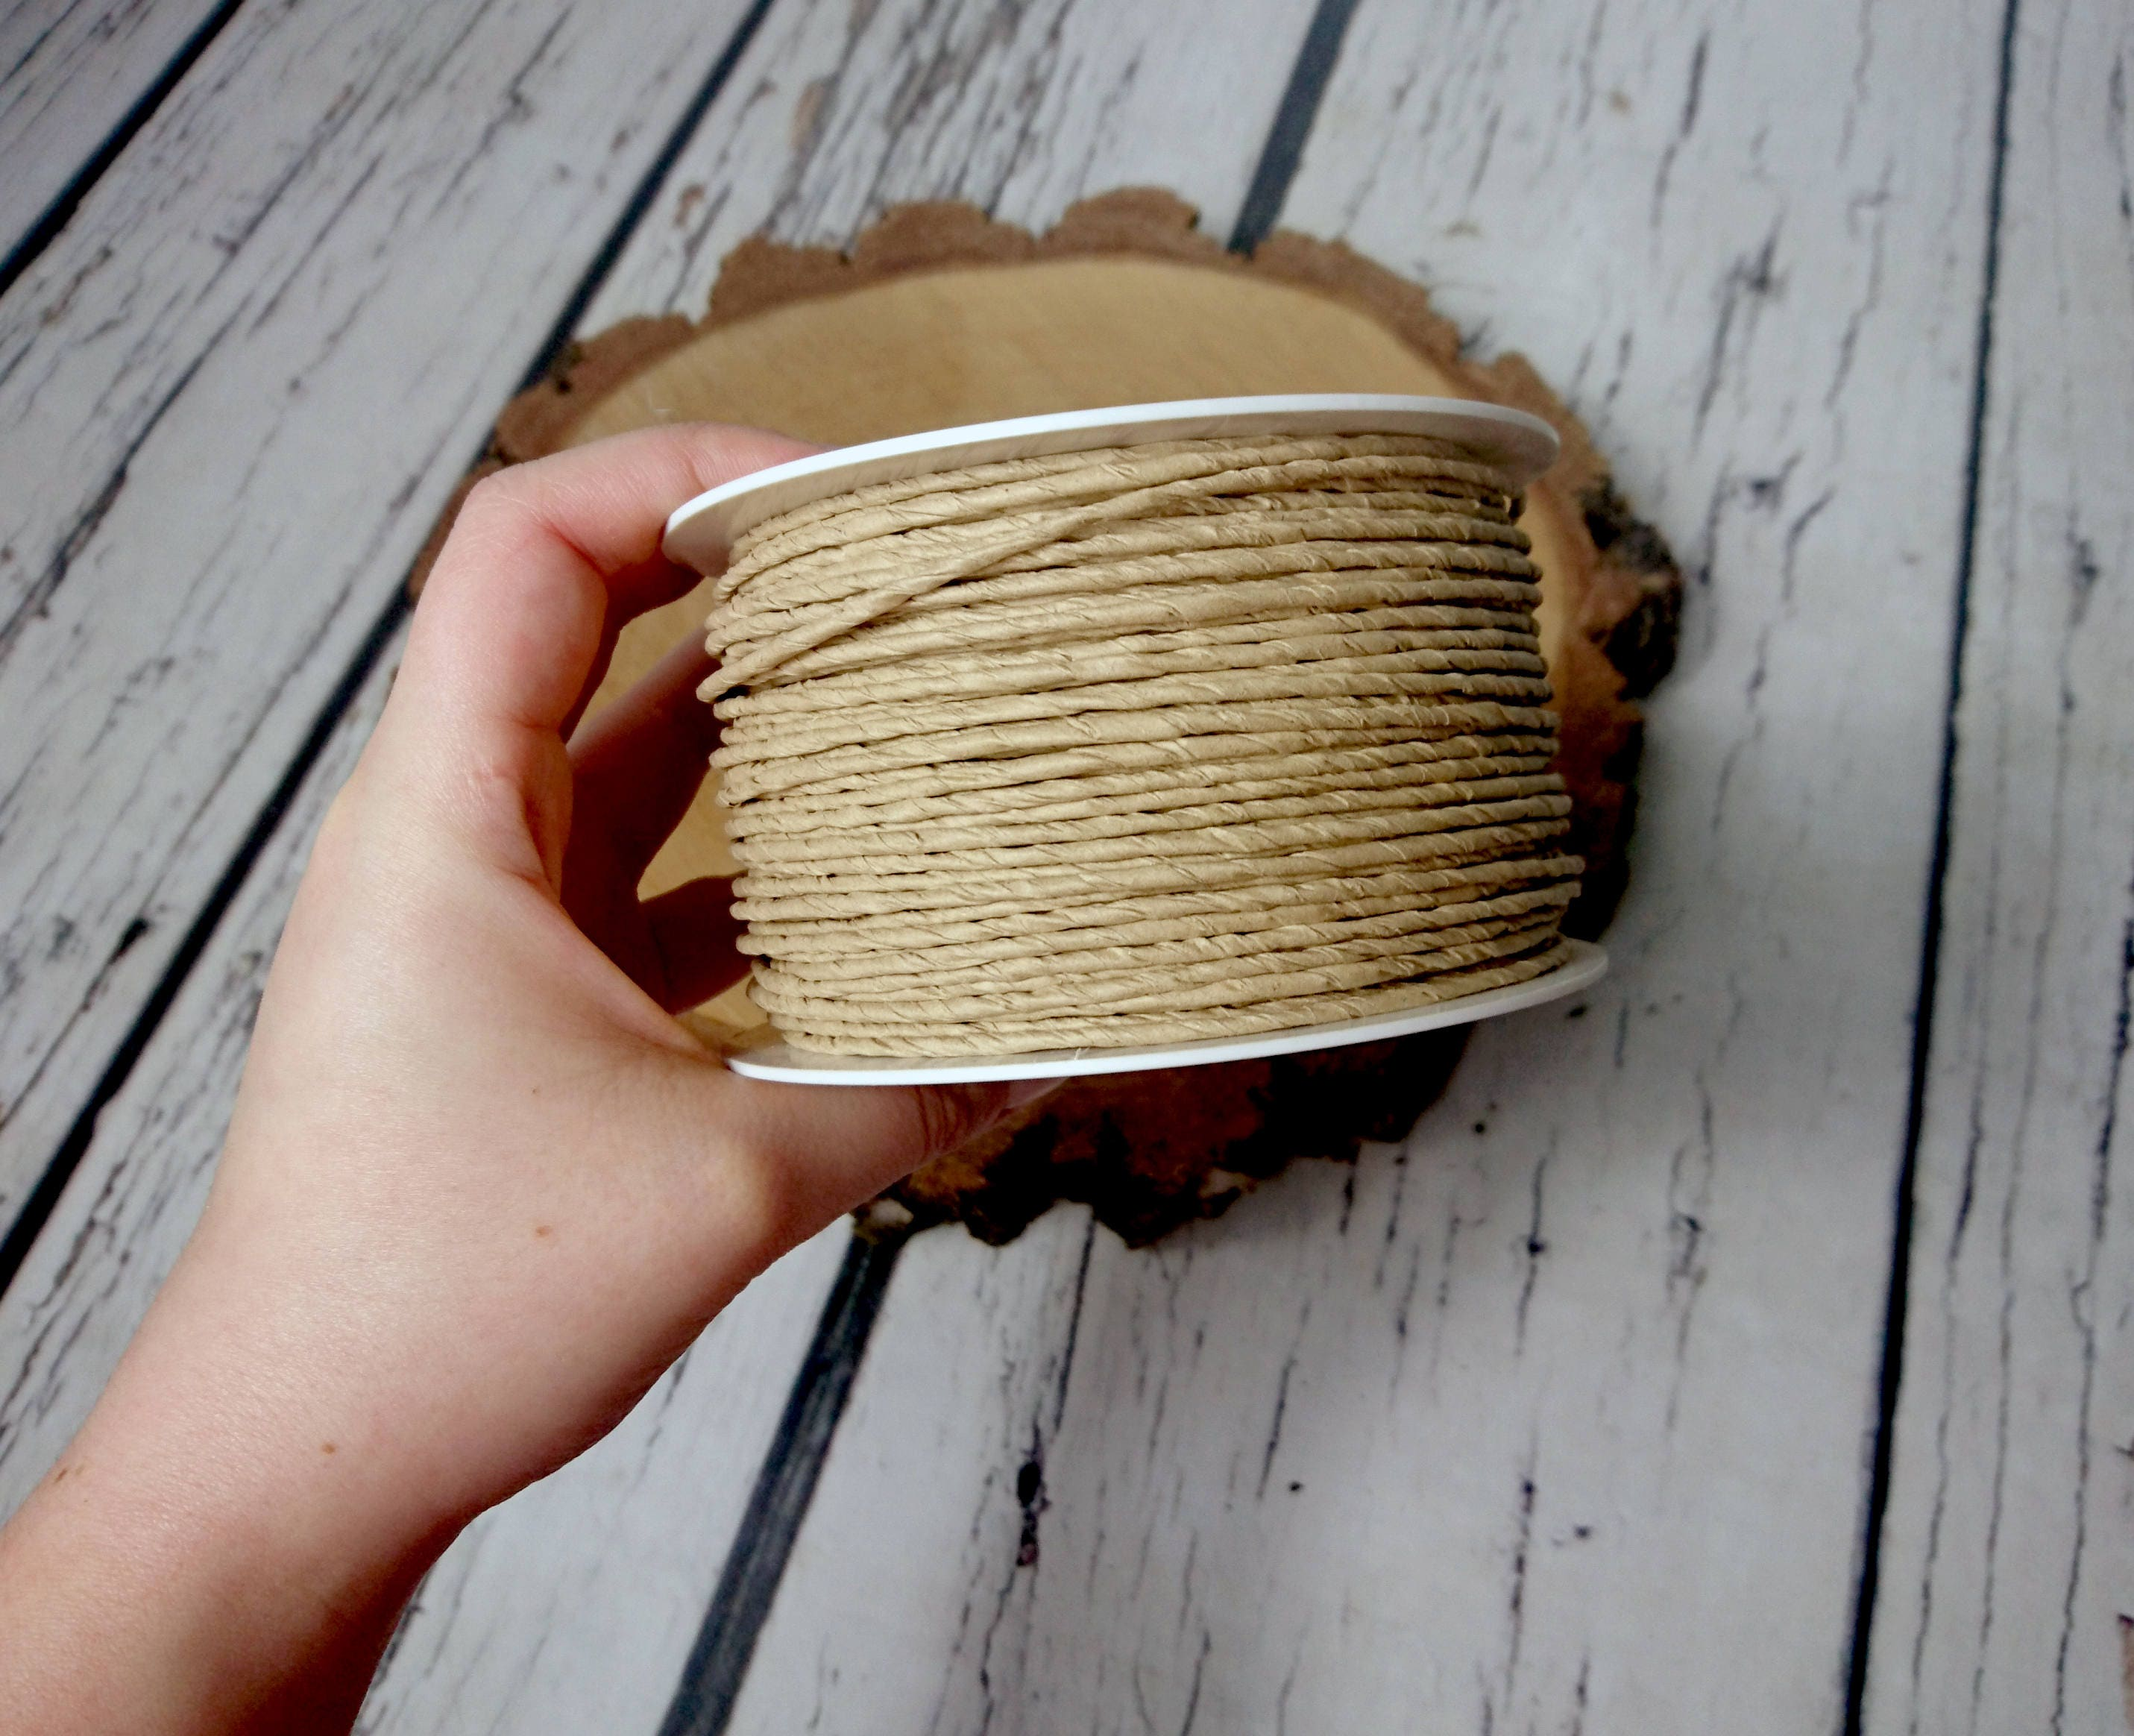 Paper covered rustic wire 100m 109yd natural beige light brown paper covered rustic wire 100m 109yd natural beige light brown flower crown wreath florist supply wedding flowers diy decor bouquet woodland izmirmasajfo